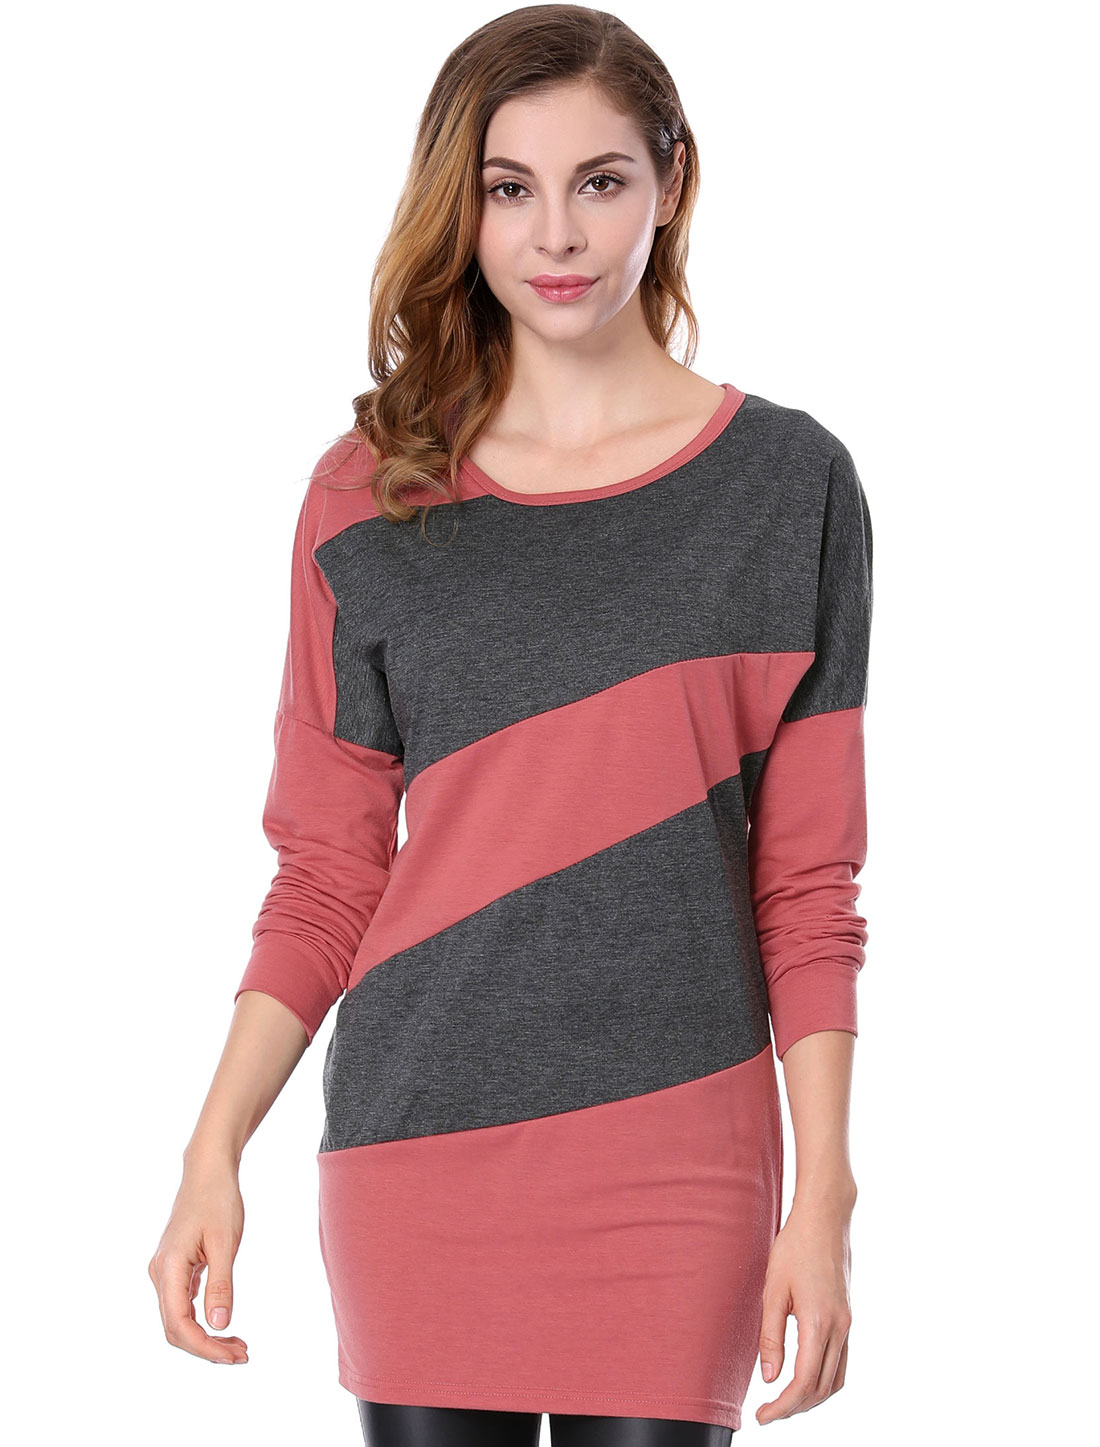 Women Color Block Batwing Sleeves Tunic Top Red XS